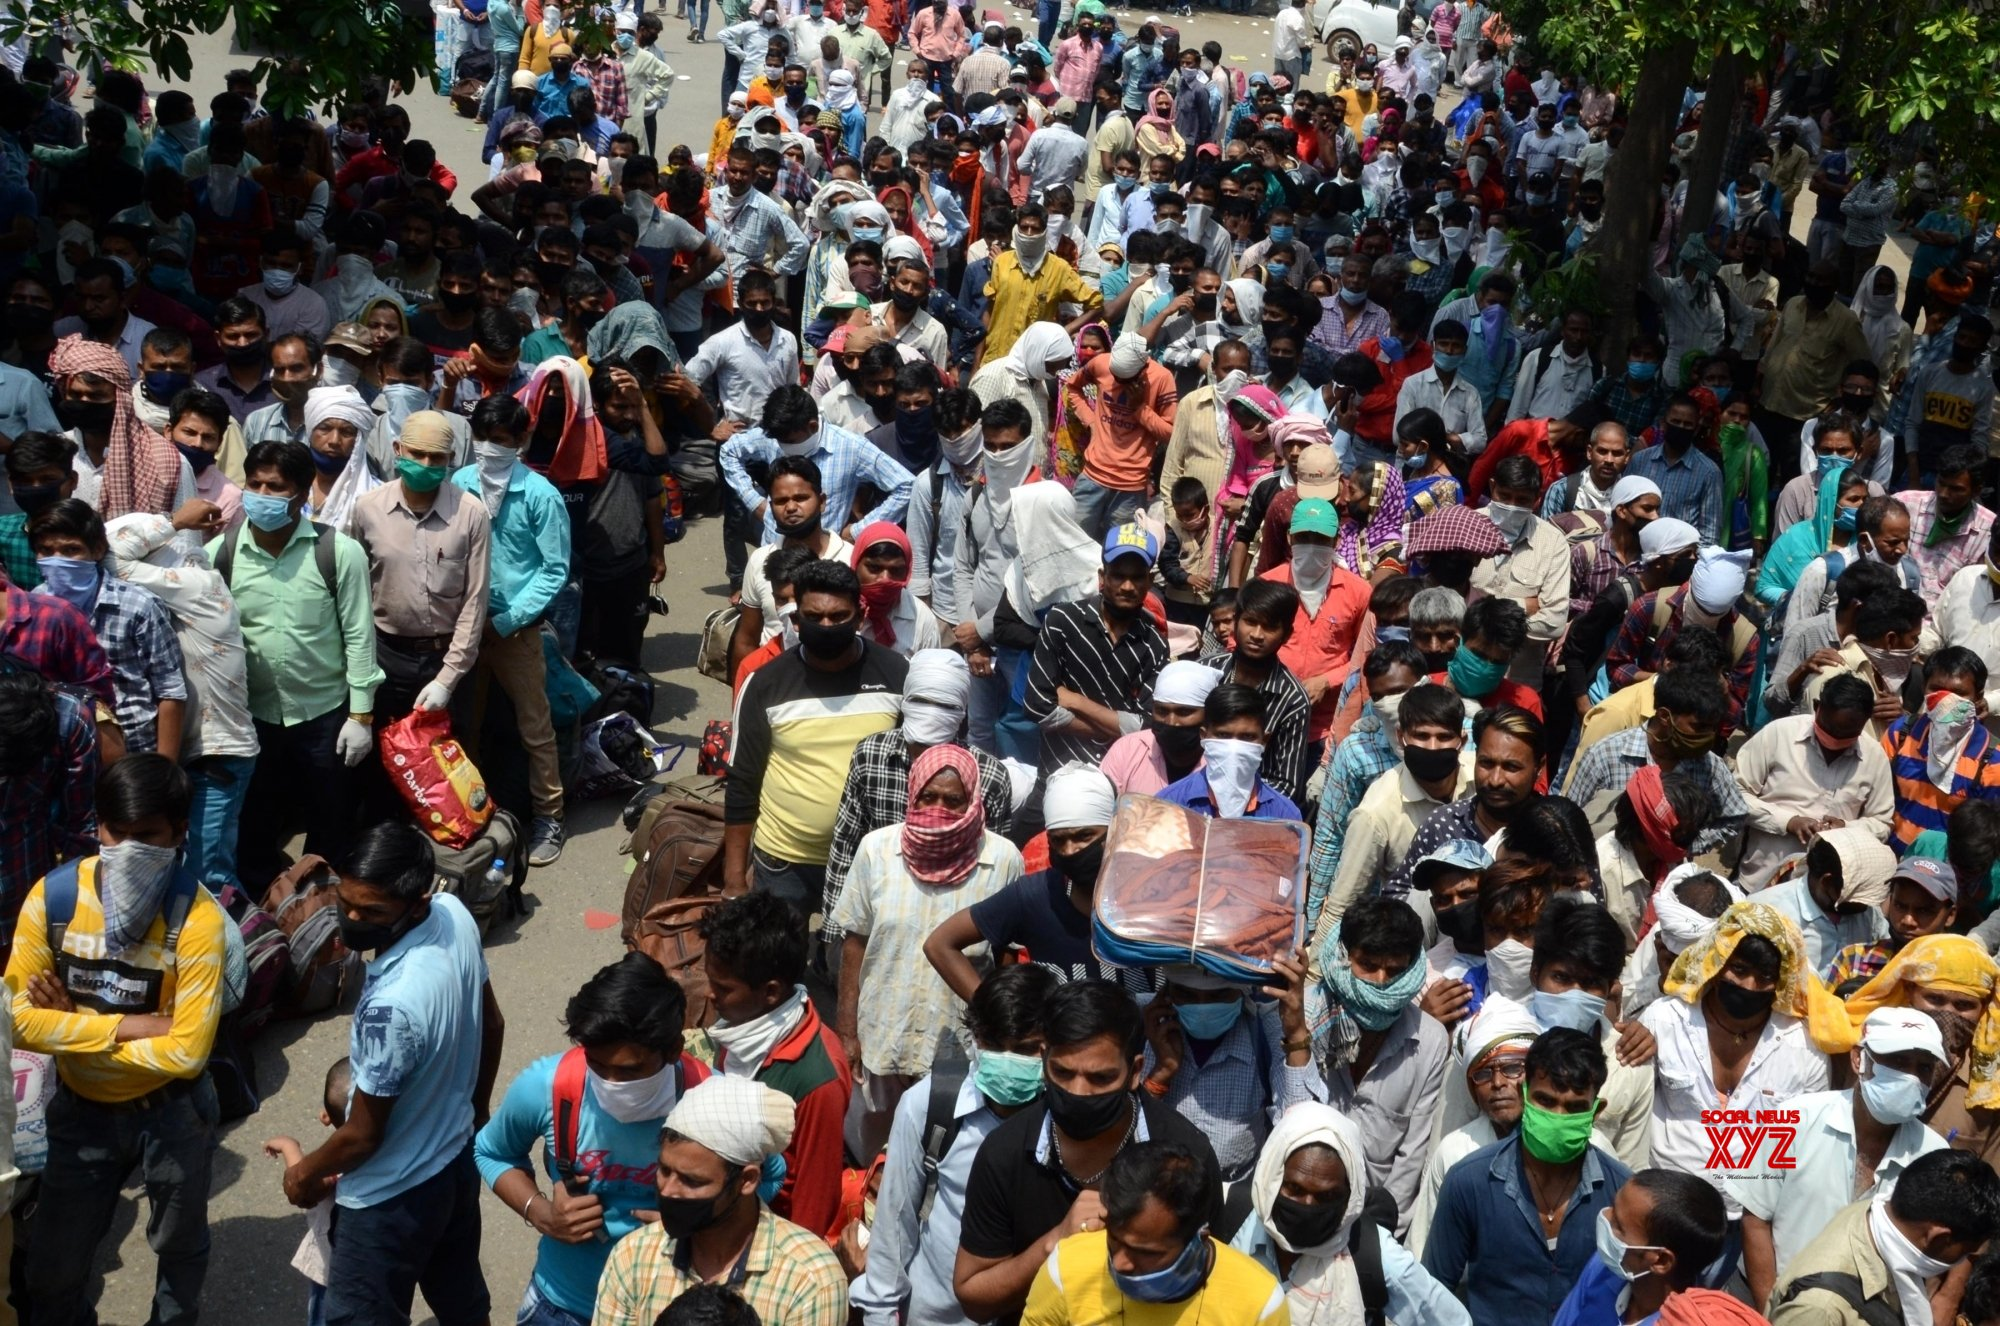 Cabinet clears scheme for free foodgrains to migrants for 2 months